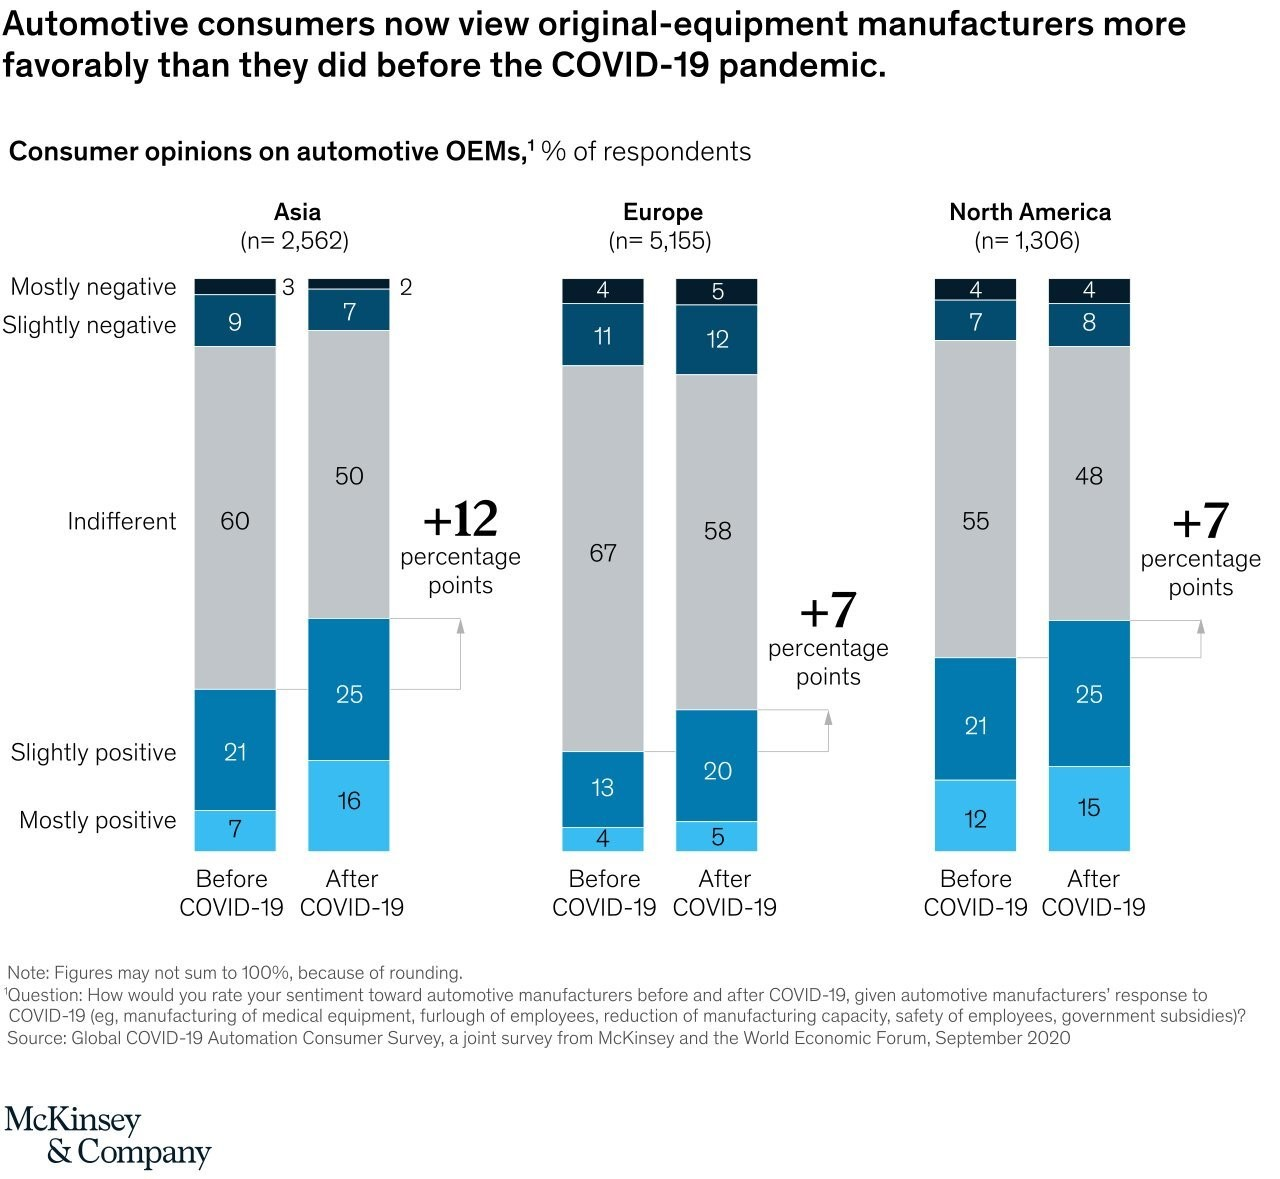 a chart showing that automotive consumers now view original-equipment manufacturers more favourably than they did before the COVID-19 pandemic